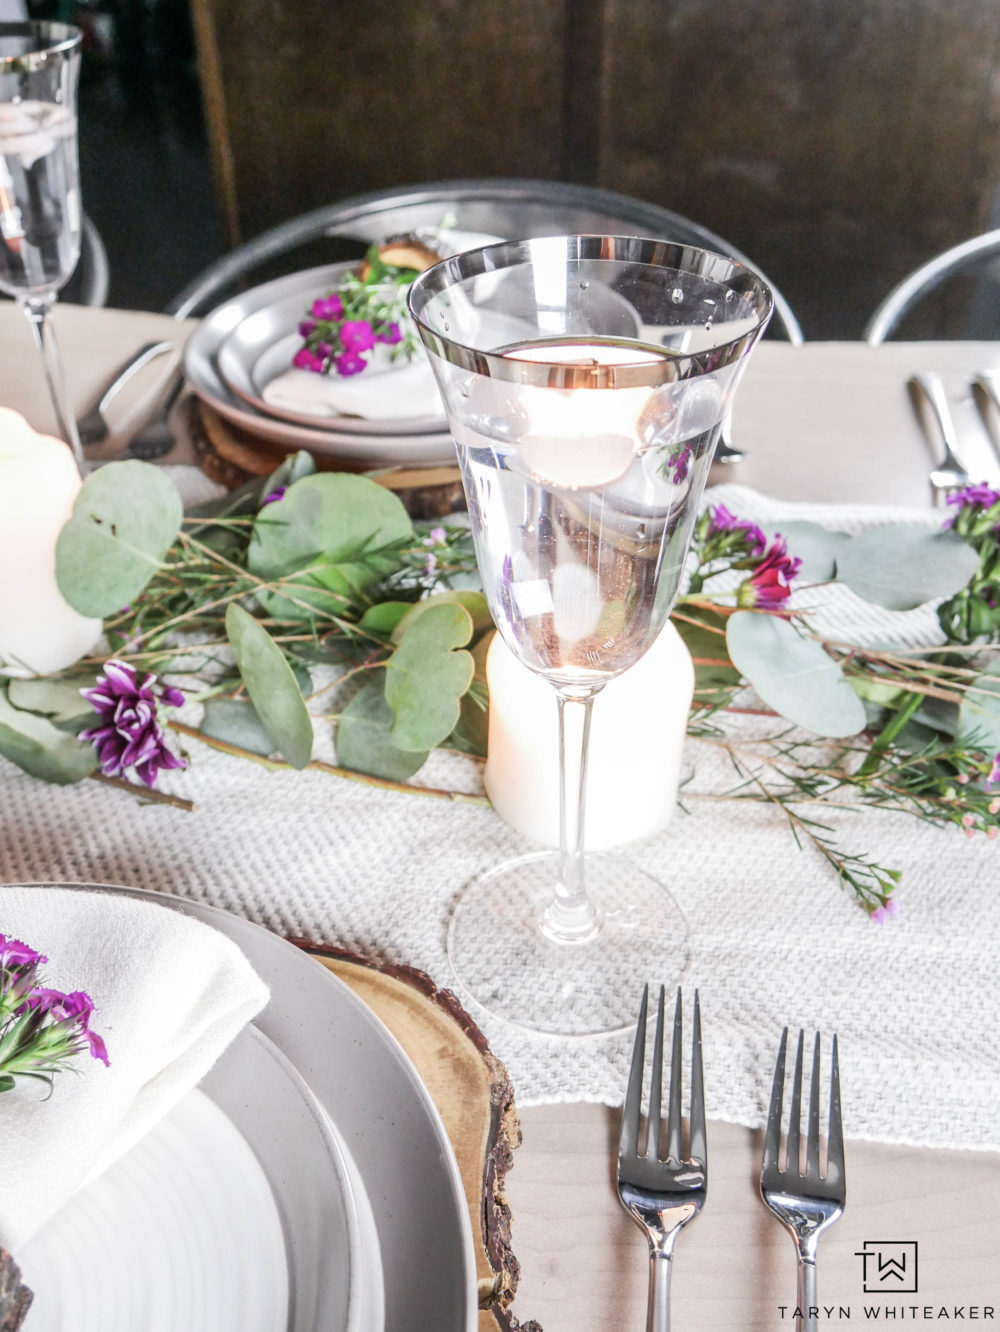 Romantic and whimsical table setting with fresh greens, neutral tones and pops of pink.